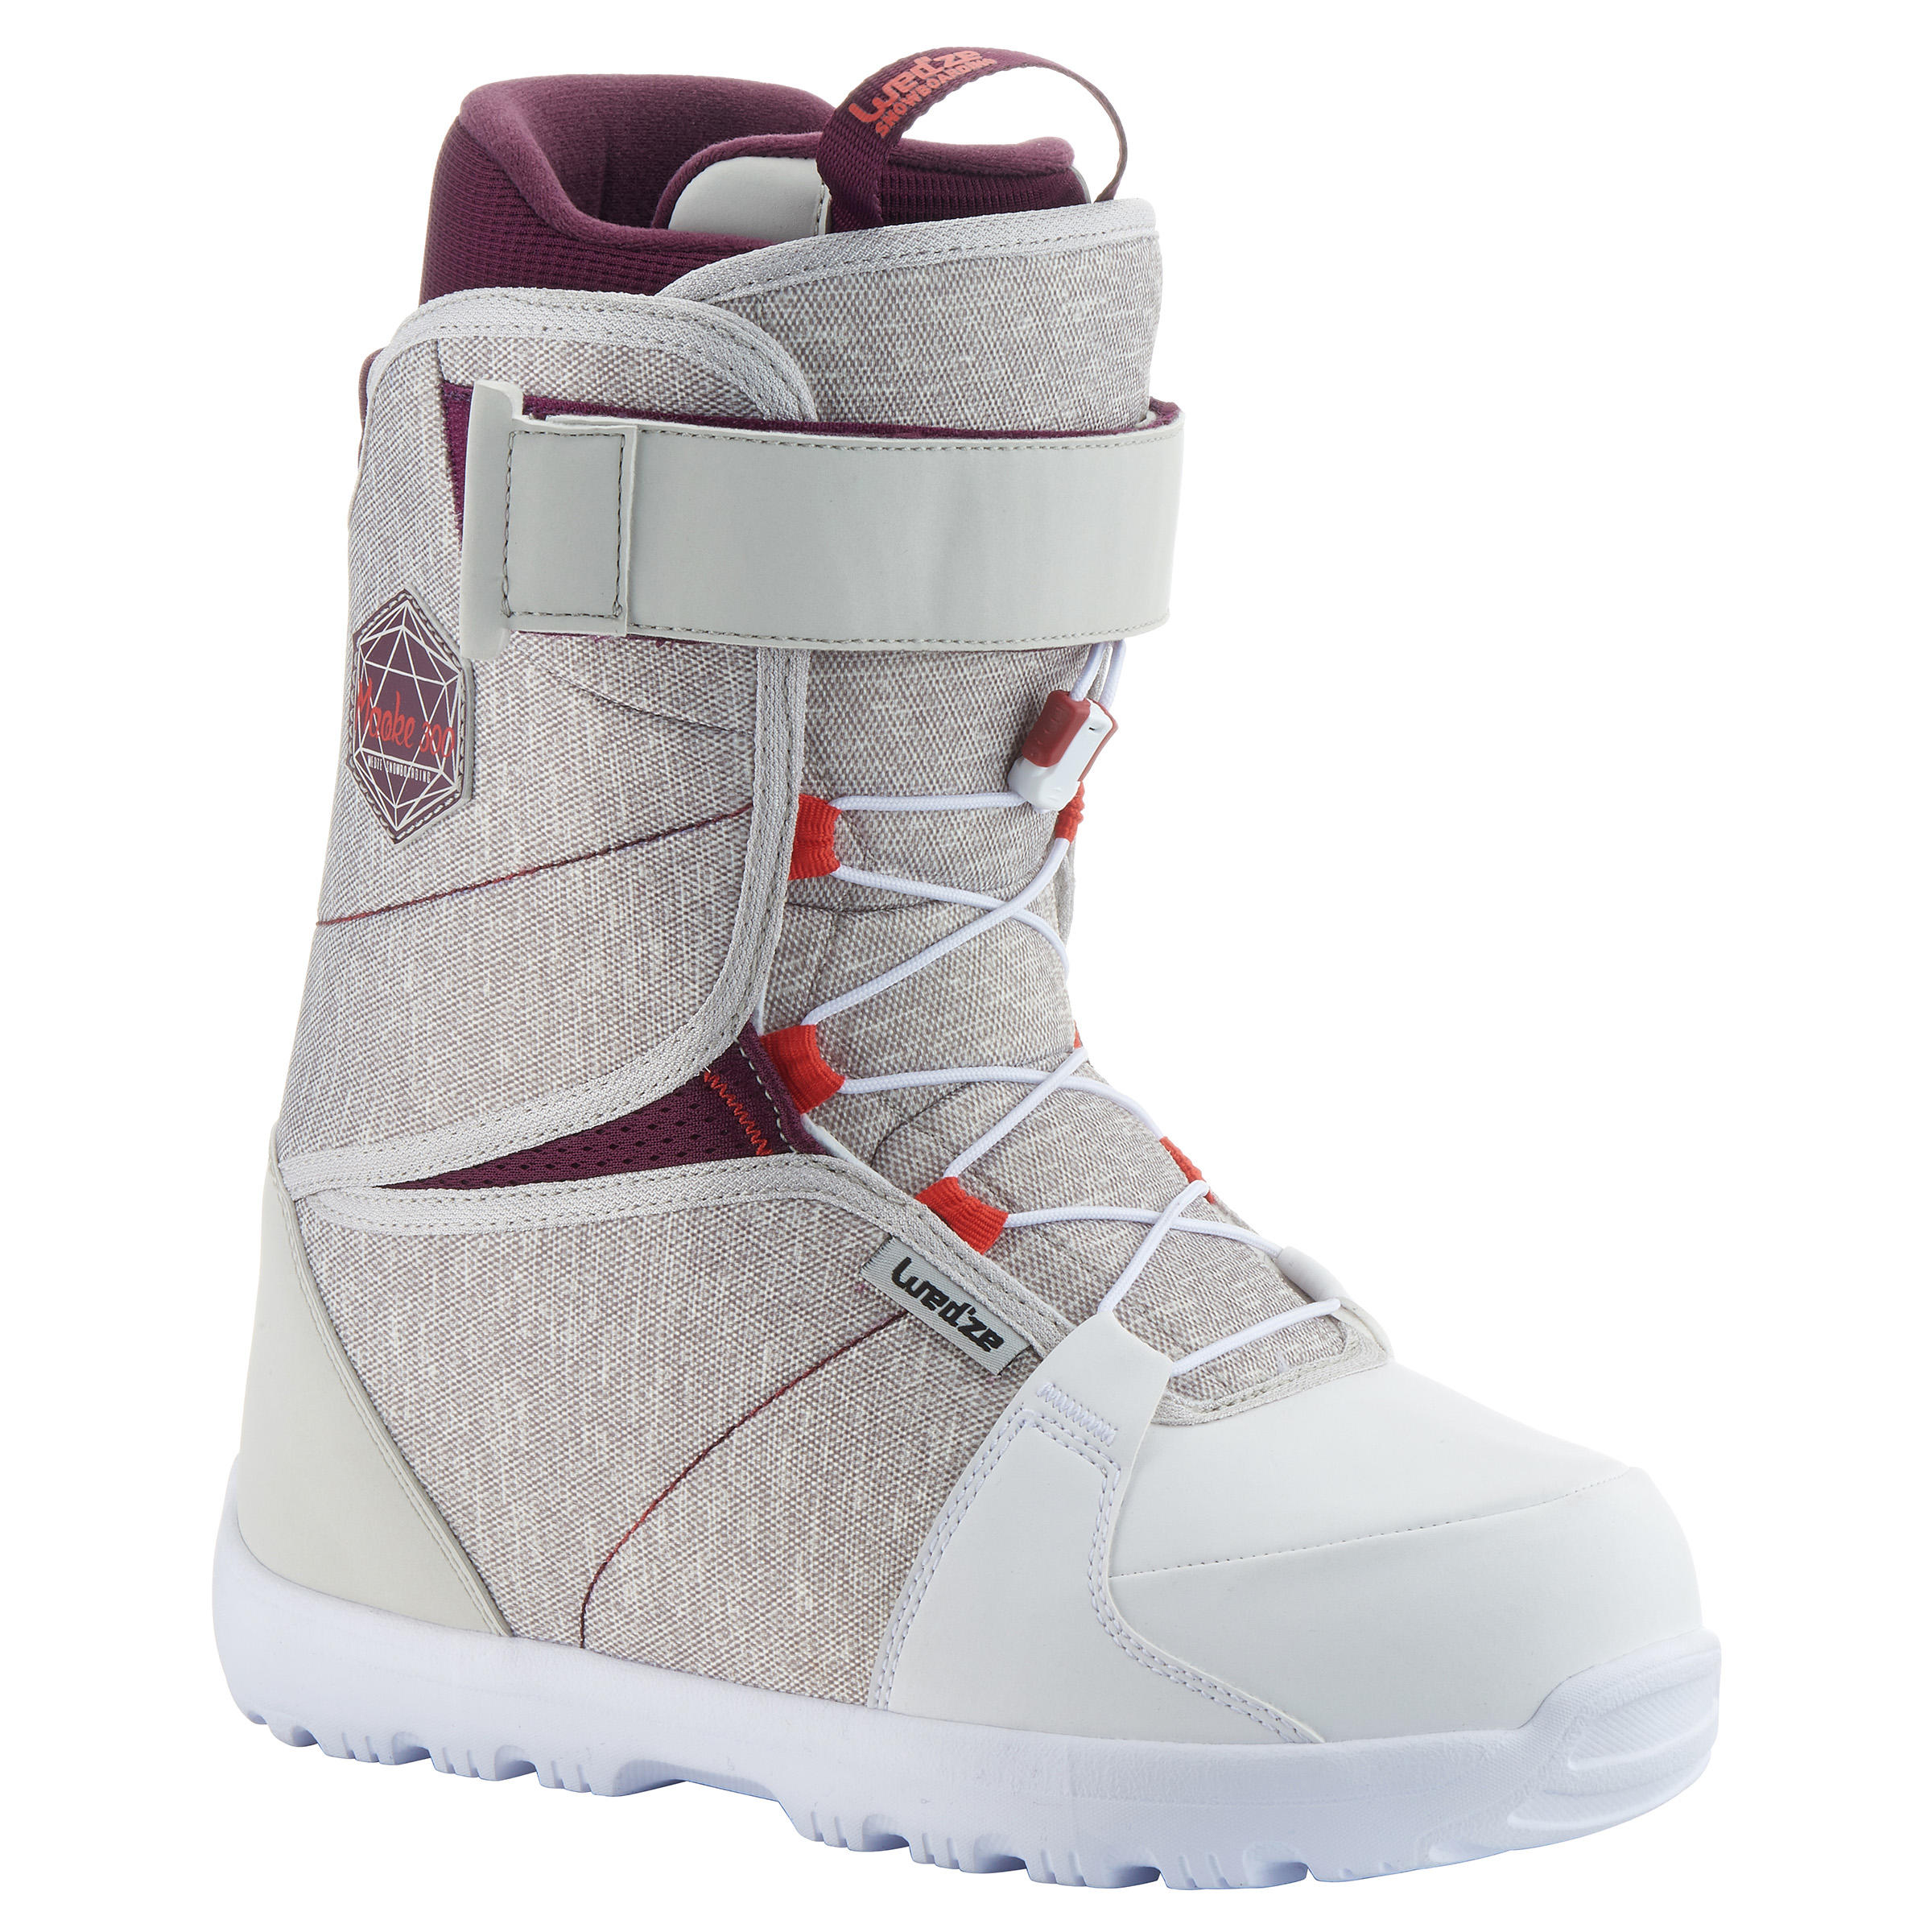 Wed'ze Snowboard boots all mountain dames Maoke 300 - Fast Lock 2Z wit thumbnail